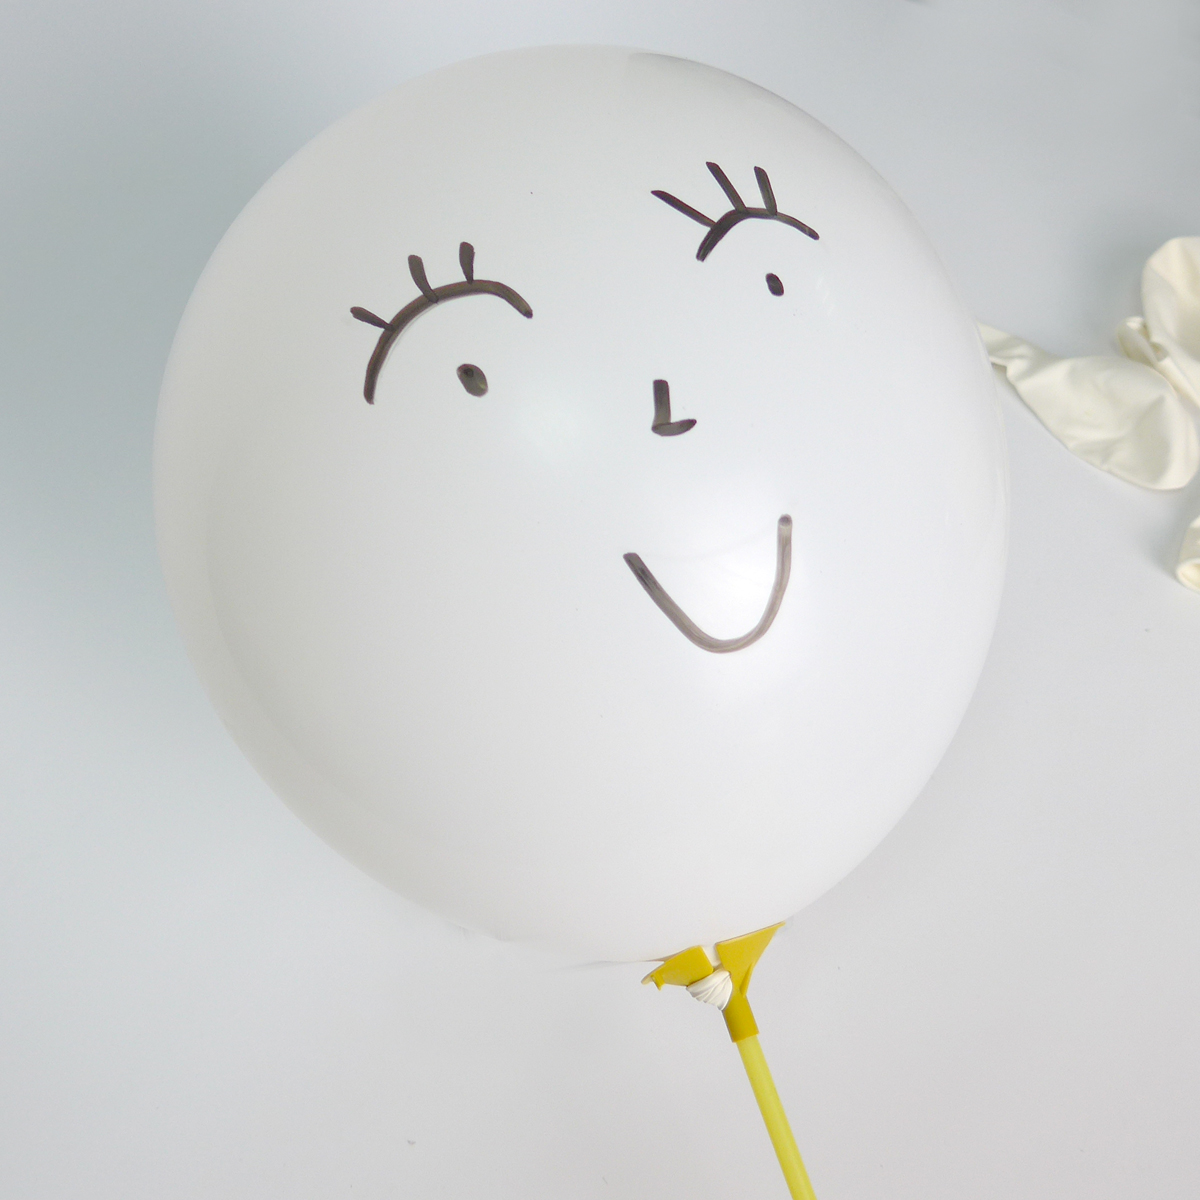 Children's Party Activity Idea II - Face Drawing ...